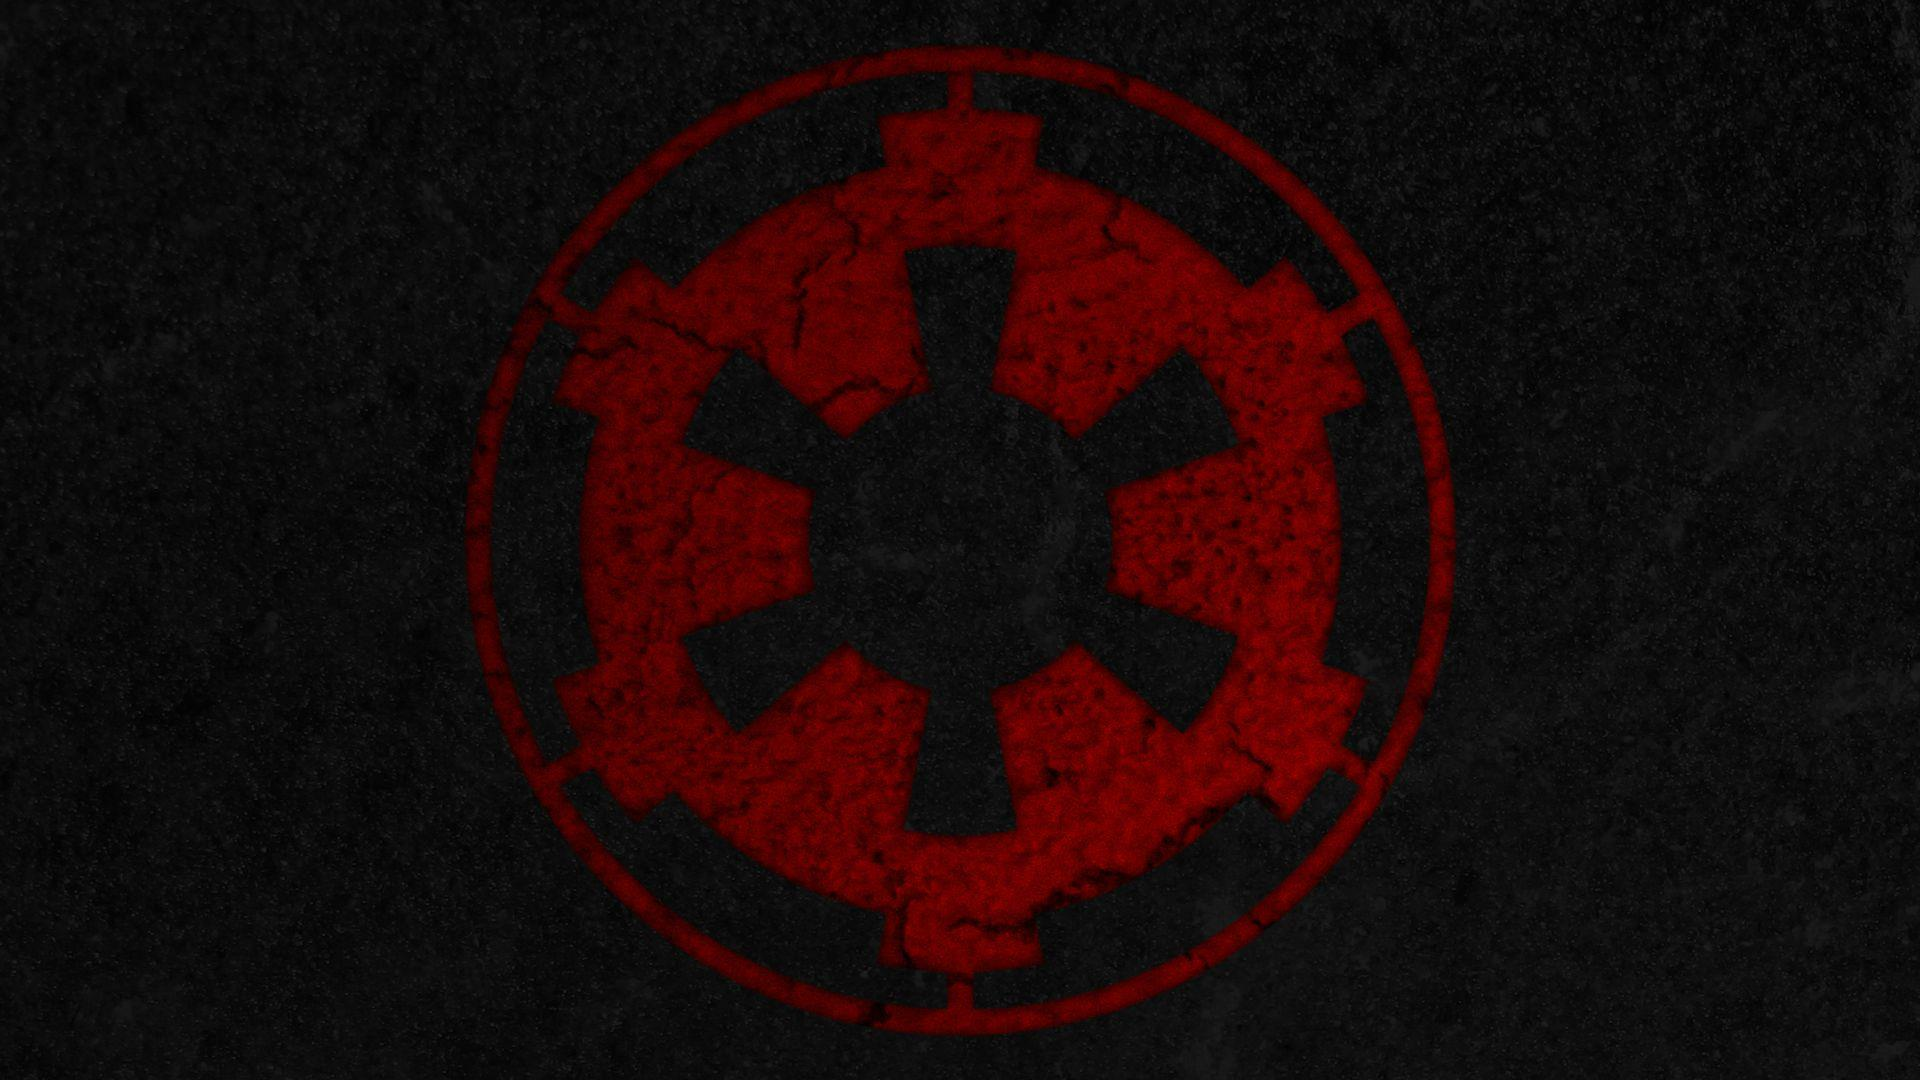 Empire   Star Wars Wallpaper for Phones and Tablets 1920x1080